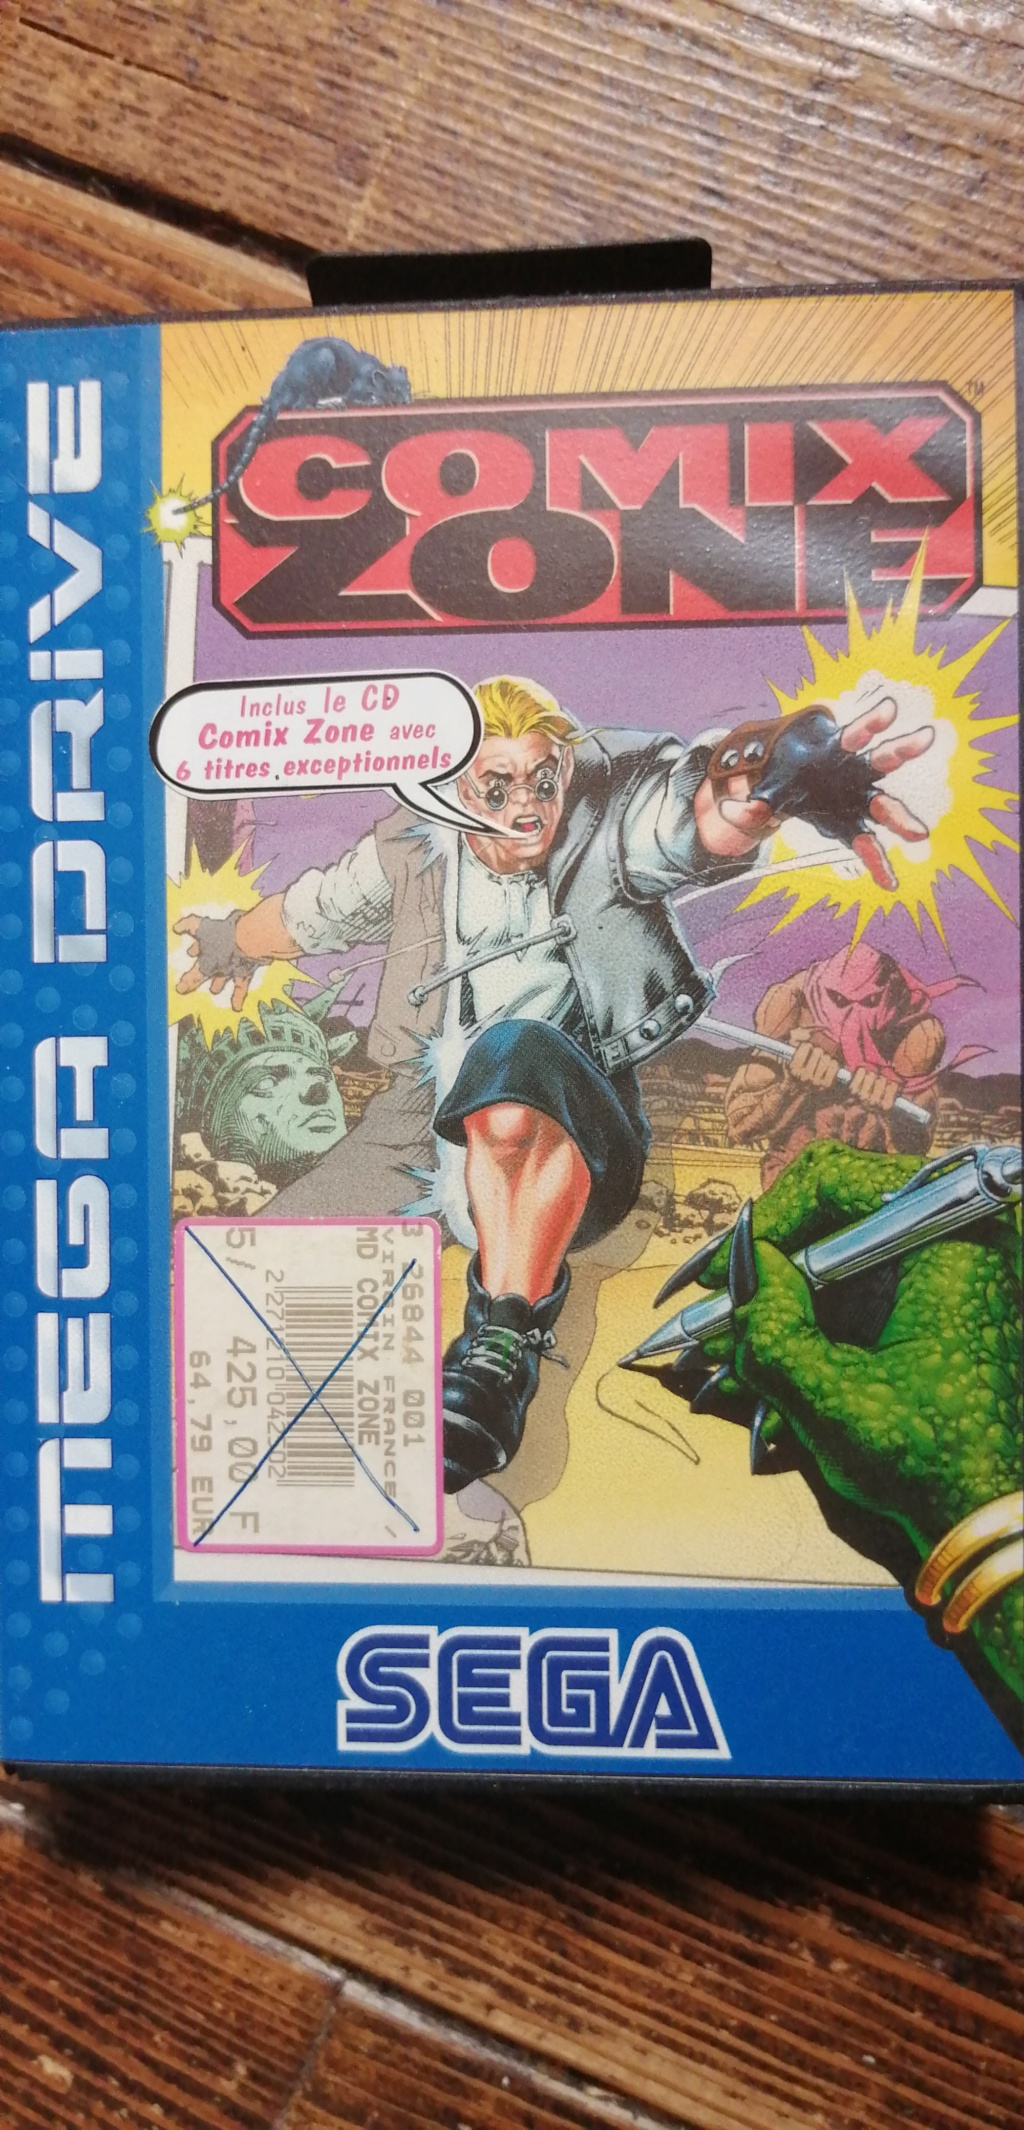 [Ech] Comix Zone MD complet comme neuf(boîte, cartouche, notice, CD)  Img_2020